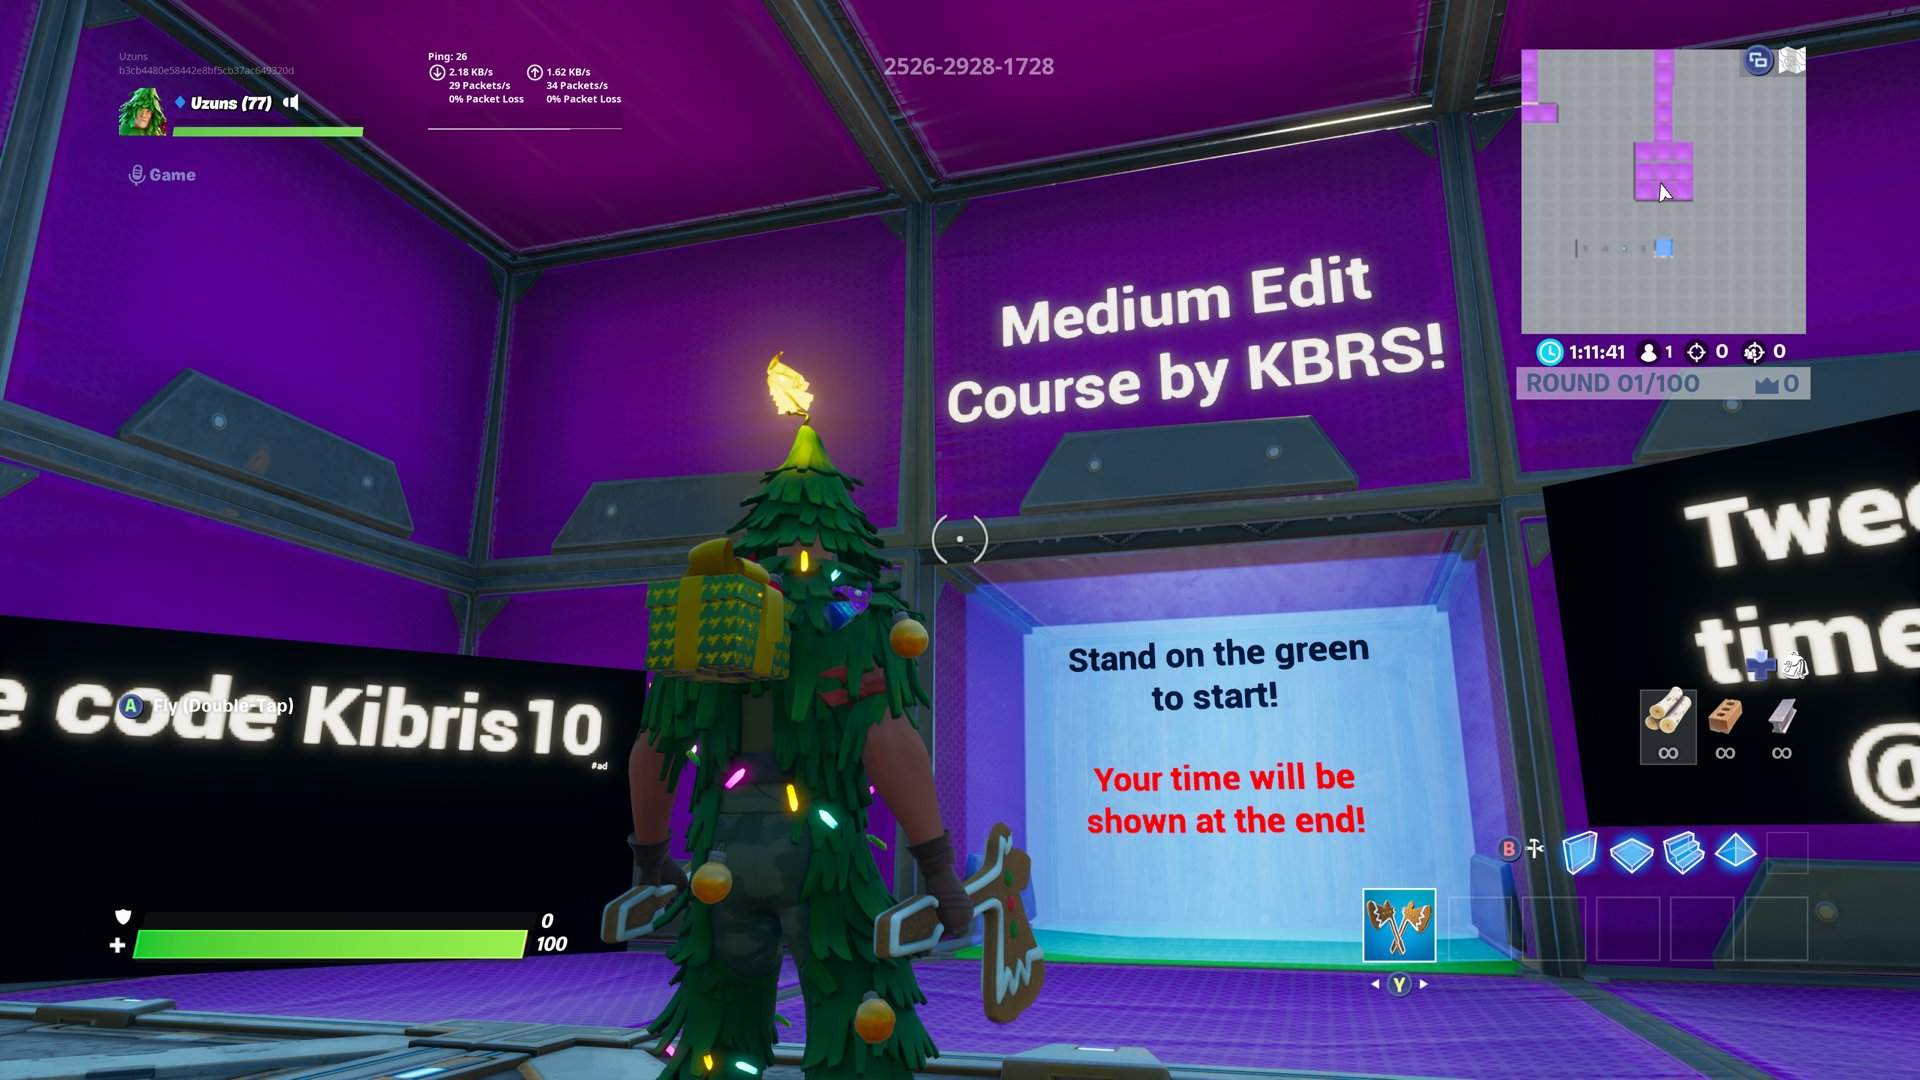 MEDIUM EDIT COURSE BY KBRS